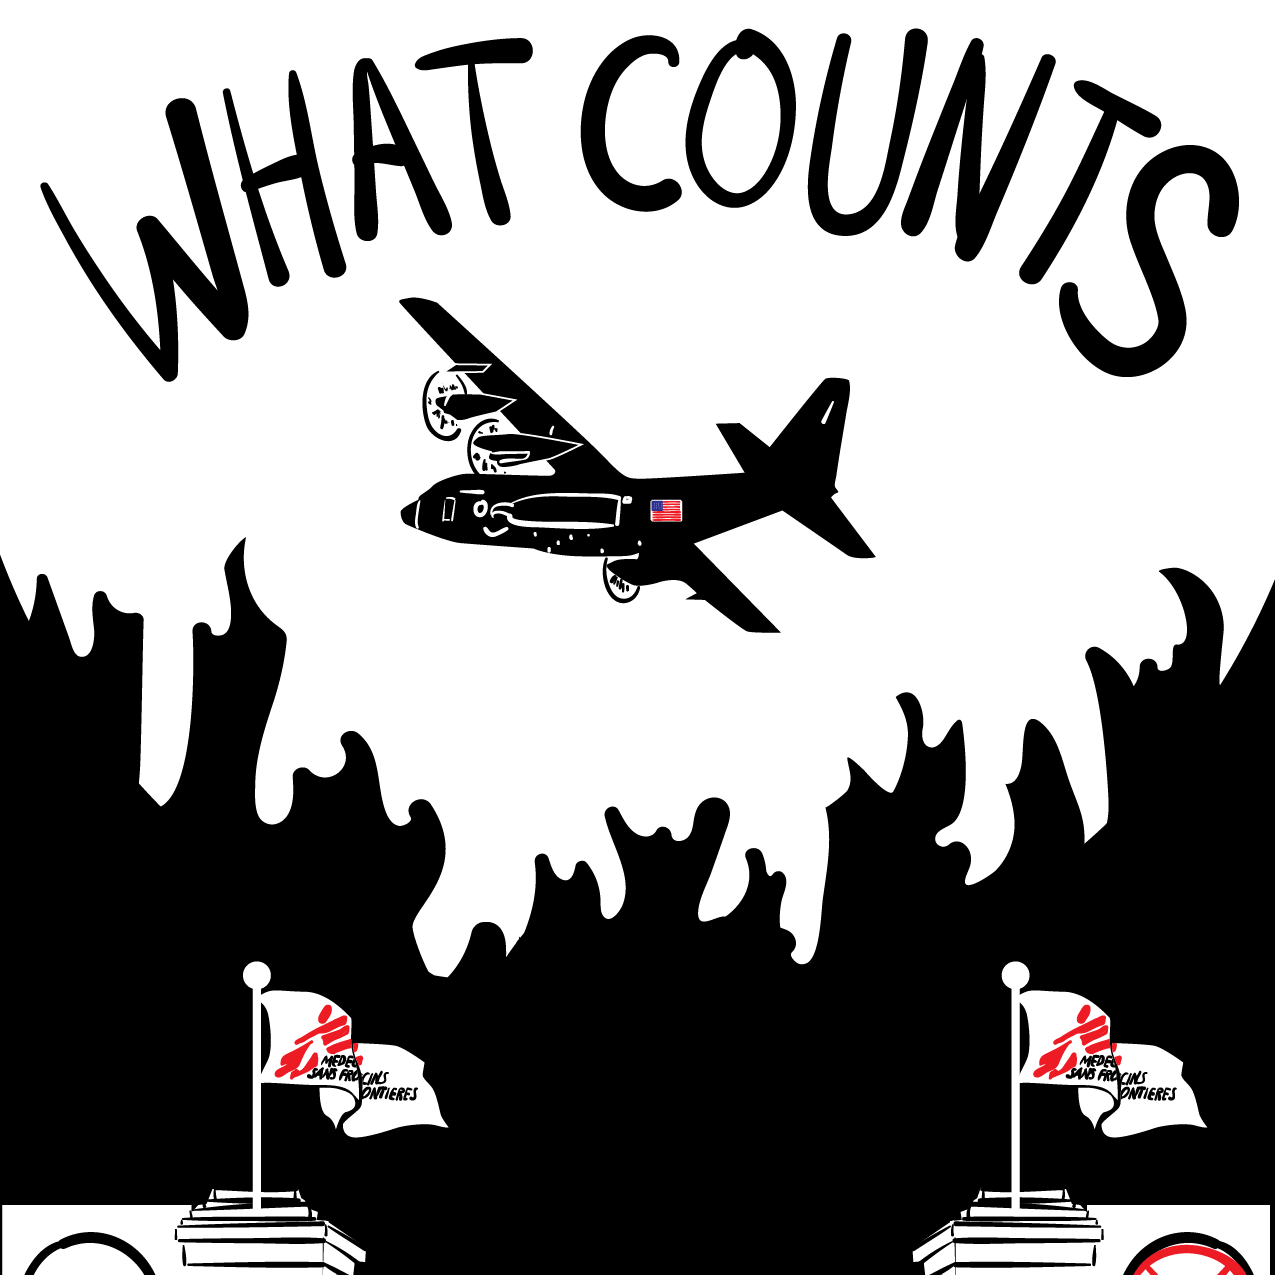 WHAT COUNTS - This piece explores what happened on October 3, 2015, when a Doctors Without Borders hospital in Kunduz, Afghanistan is bombed by the United States.